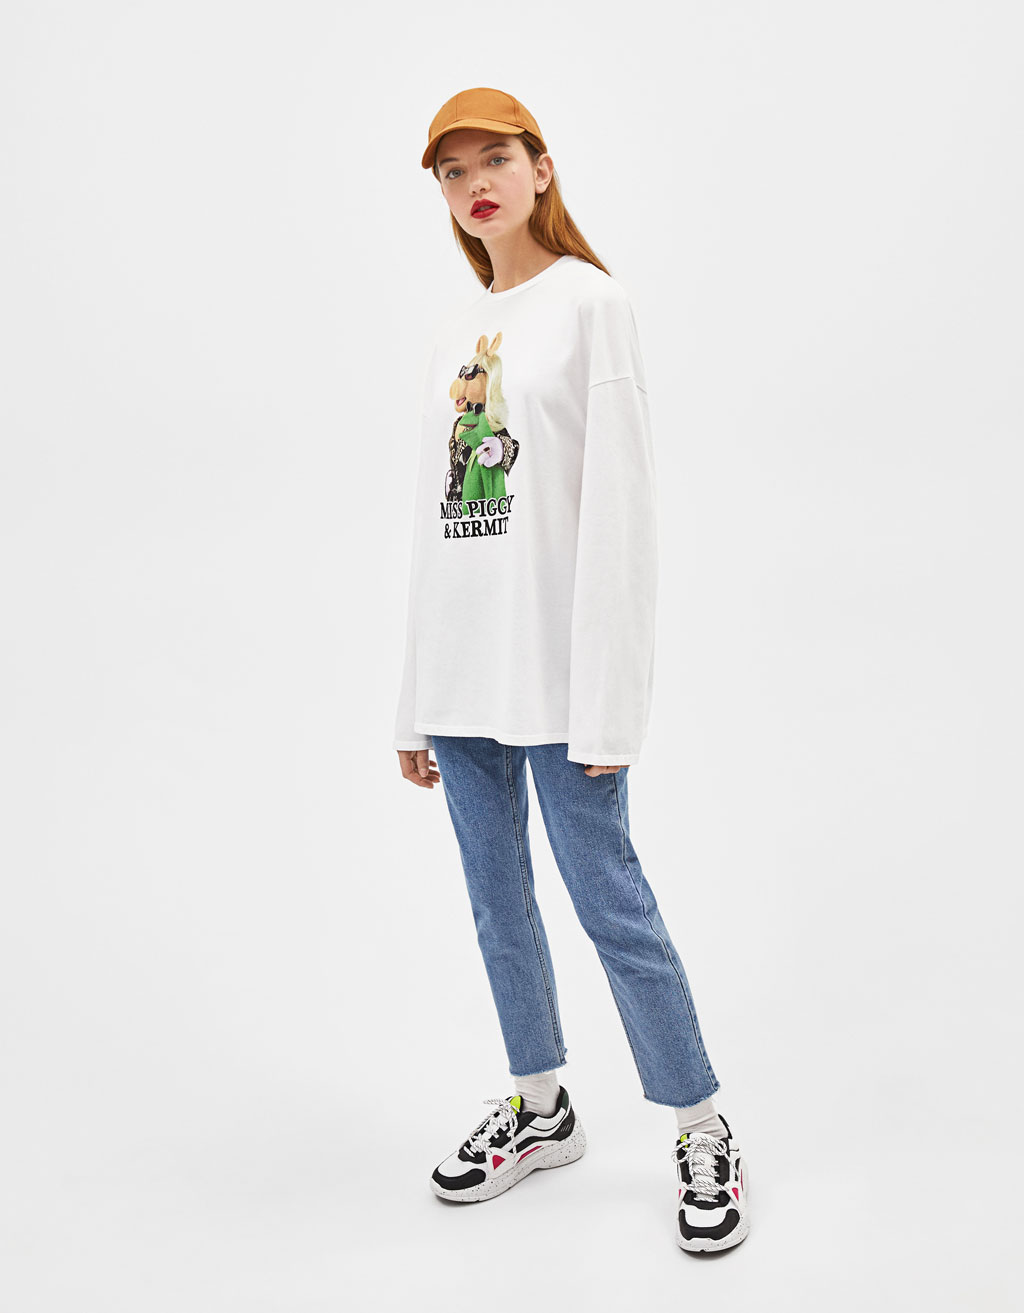 Miss Piggy long sleeve T-shirt